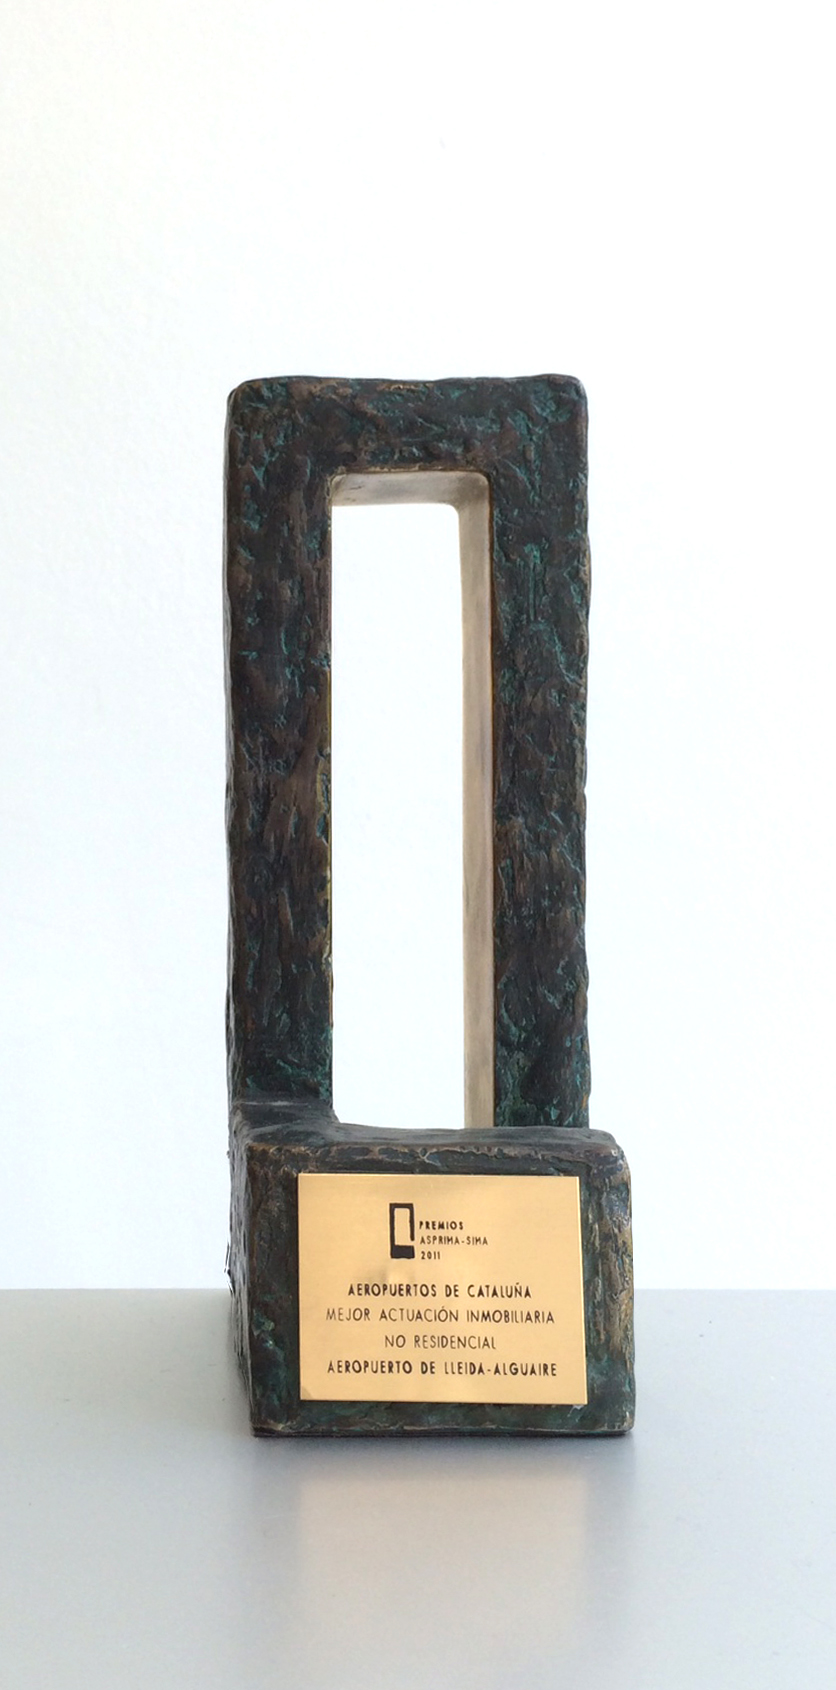 Asprima-Sima Awards 2011 – First Prize: Best Non-Residential Real Estate Performance